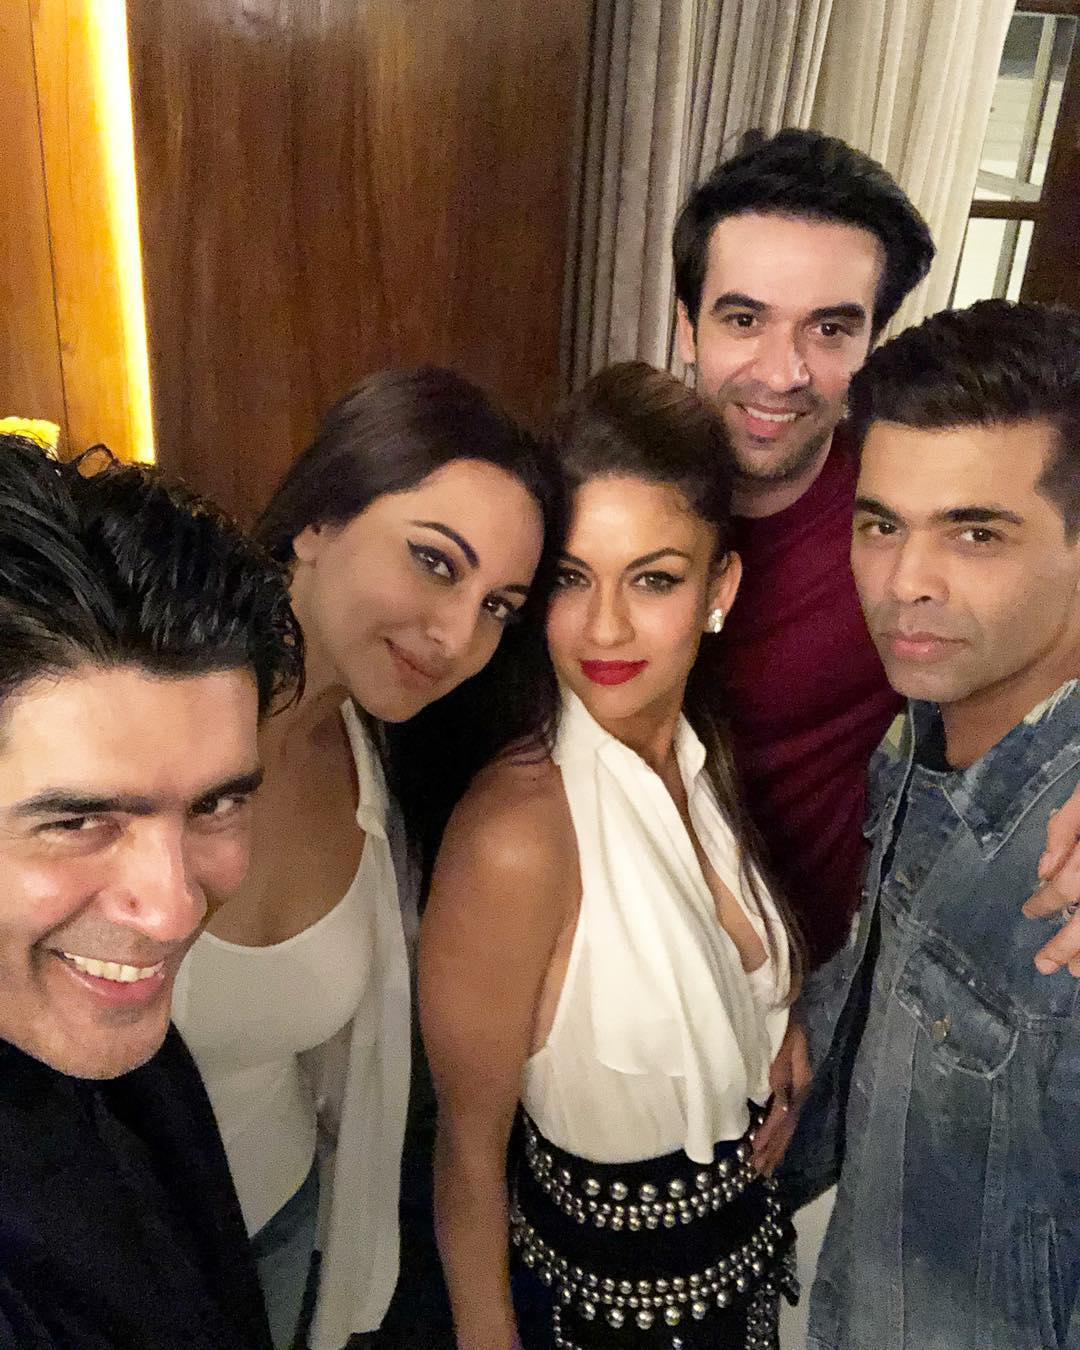 Manish Malhotra, Sonakshi Sinha and others